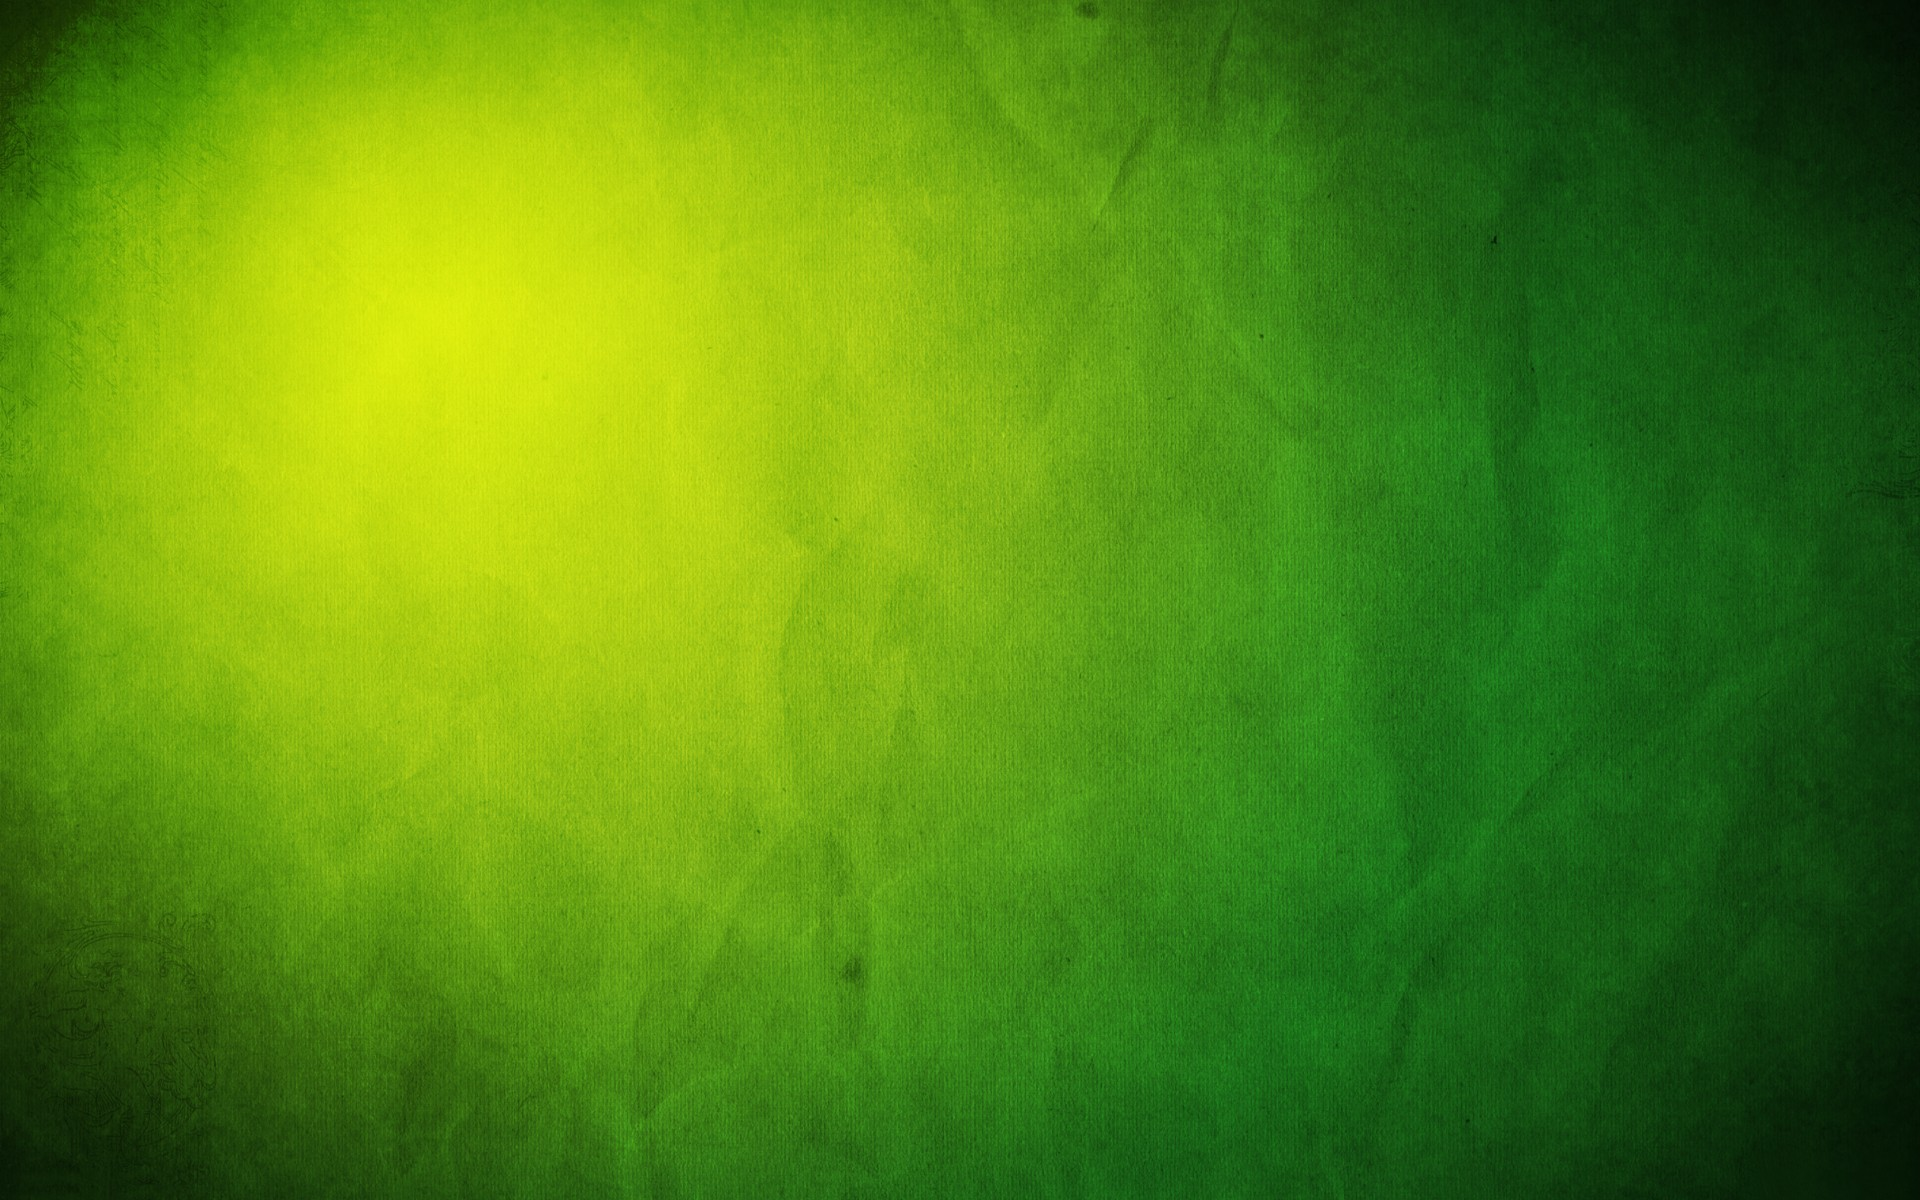 pattern green backgrounds ua